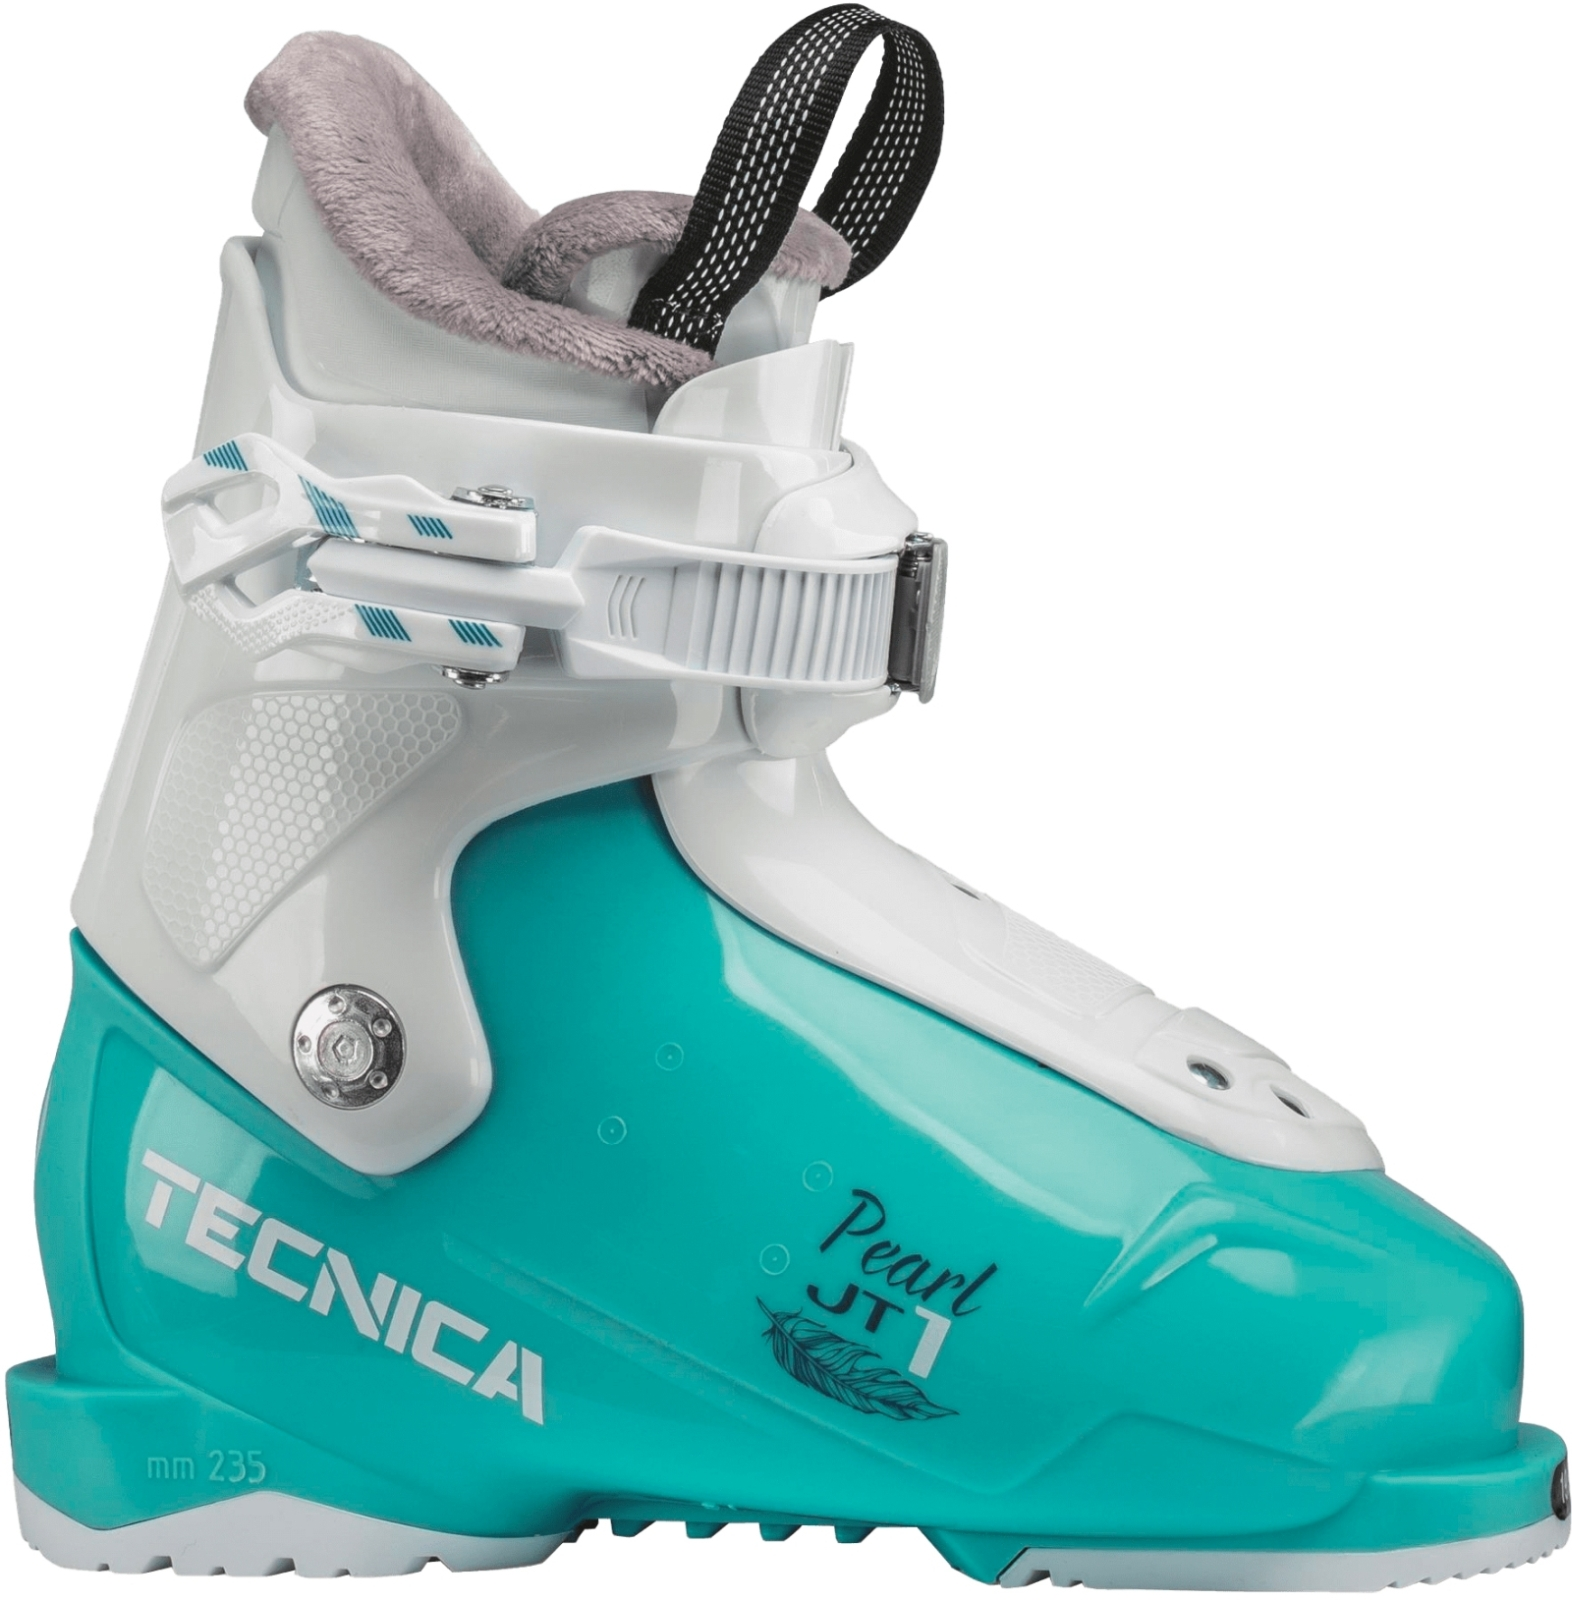 Tecnica JT 1 - light blue 170